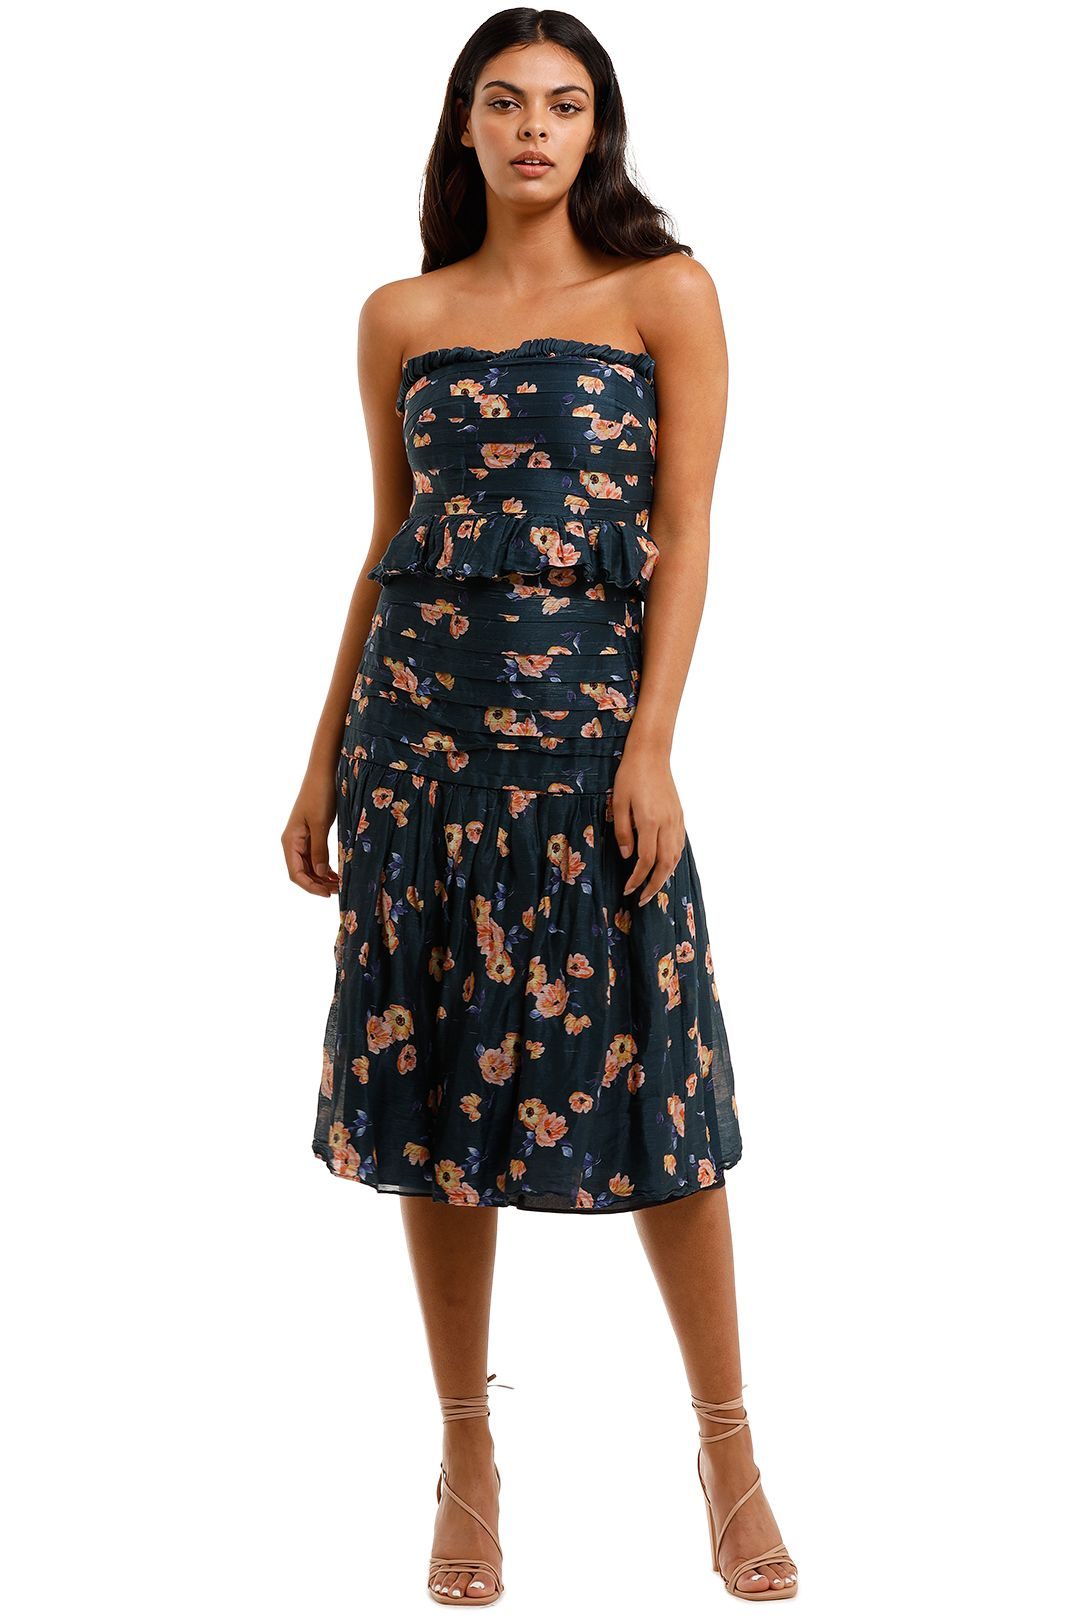 Talulah Chain of Fire Top and Skirt Set Henri Floral Strapless